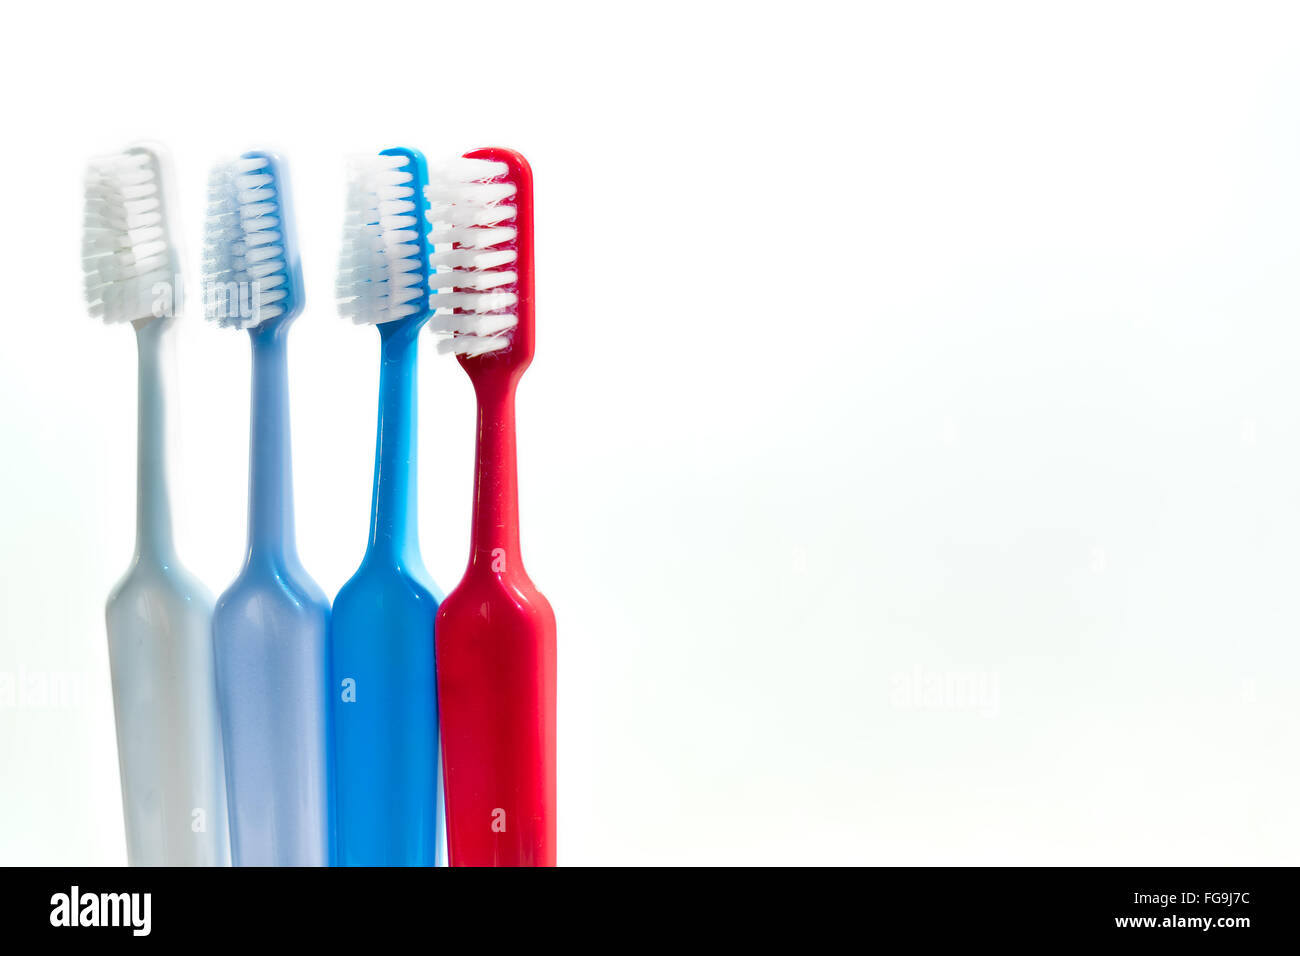 Close-Up Of Multi Colored Toothbrushes Against White Background - Stock Image